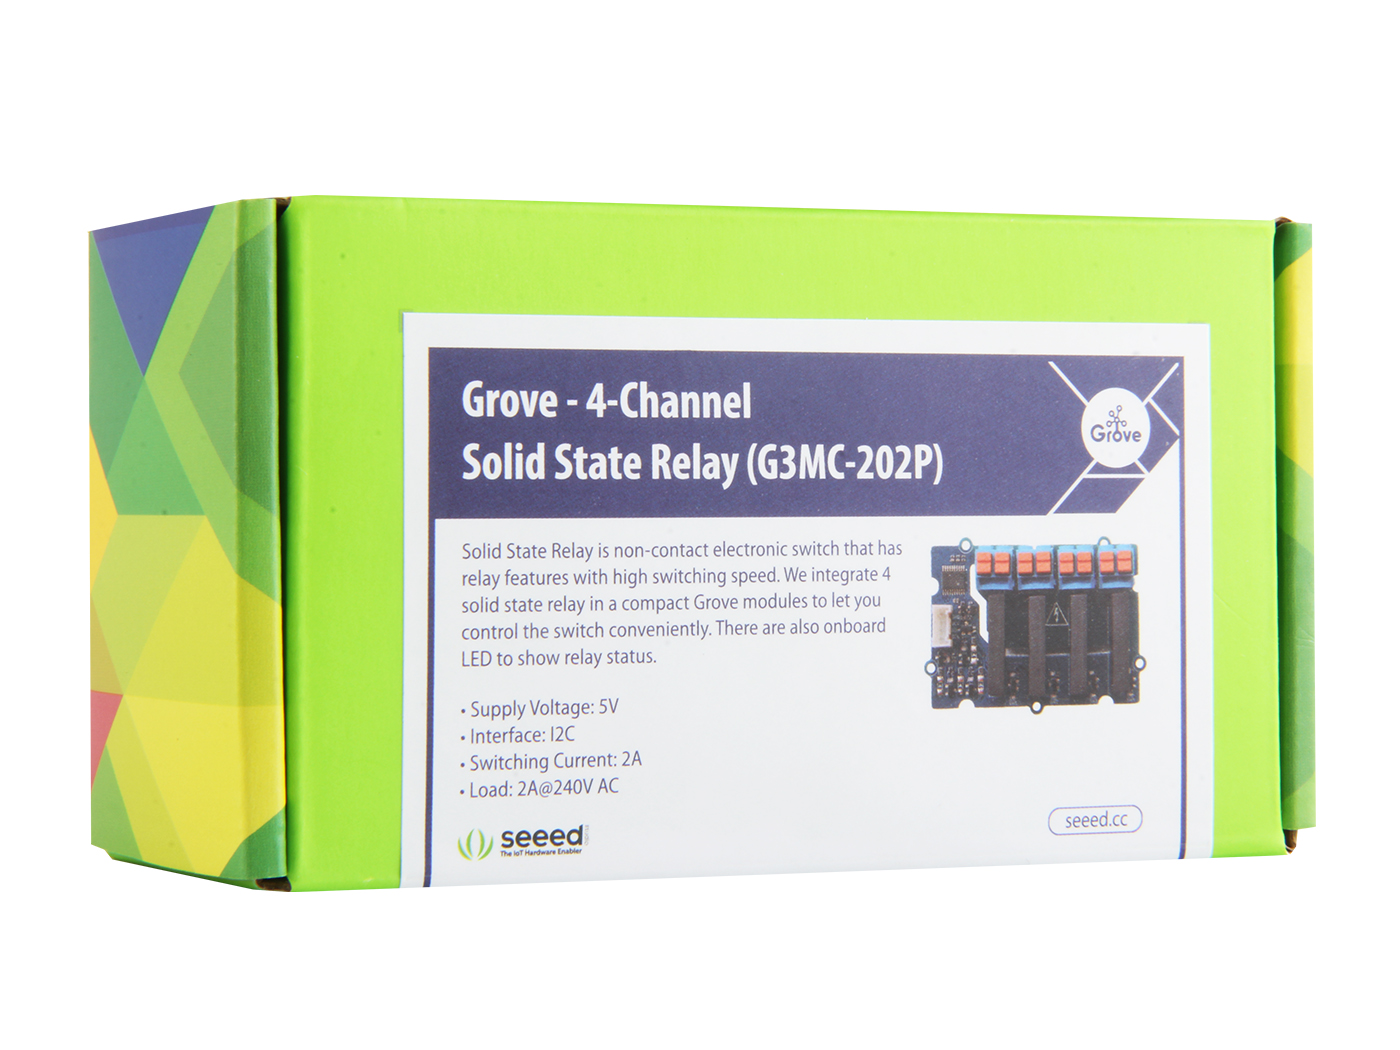 Grove 4 Channel Solid State Relay Switching Current Of